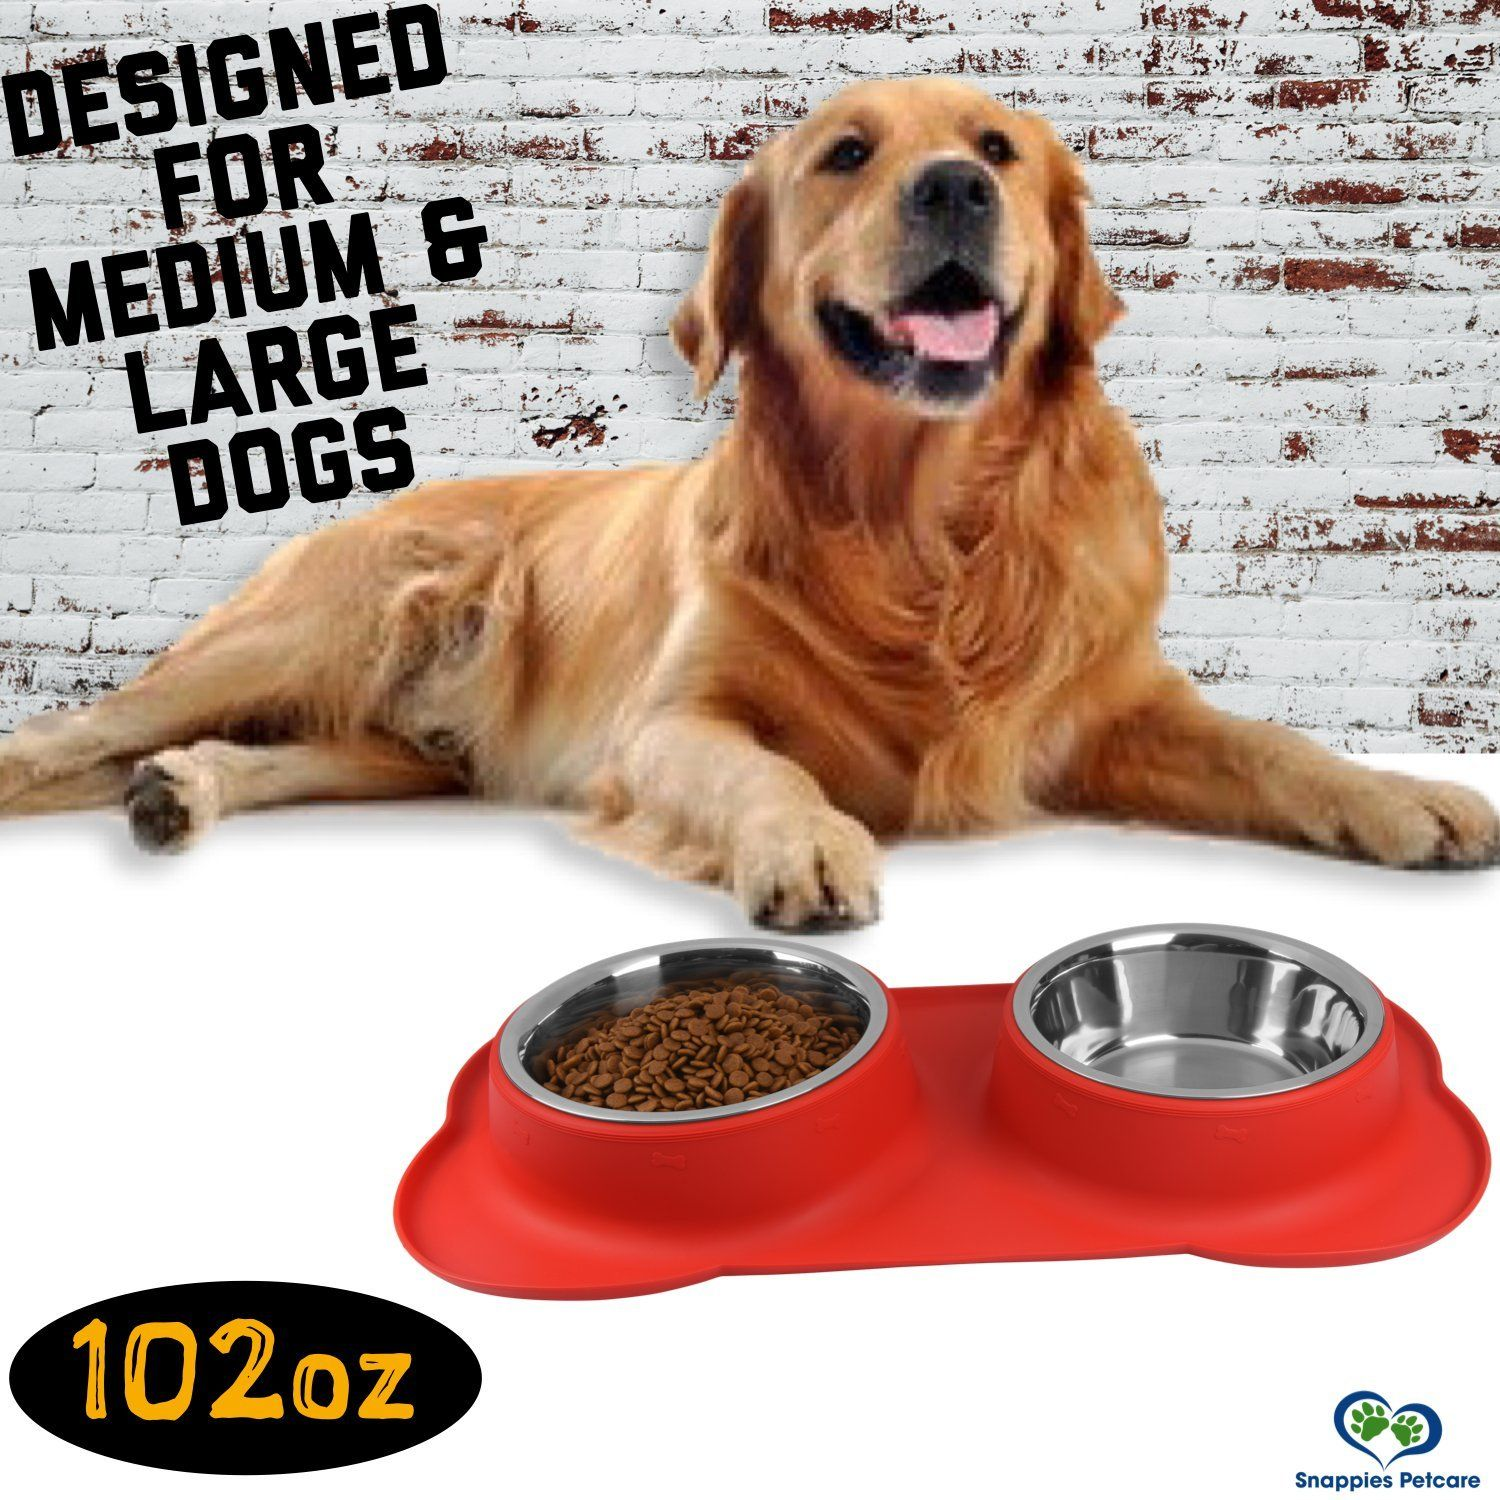 Large Dog Bowl 2 Large Capacity 54oz 108oz Total Removable Stainless Steel Bowls Set In A Stylish No Mess Detail In 2020 Large Dog Bowls Dog Bowls Dog Bowl Mat